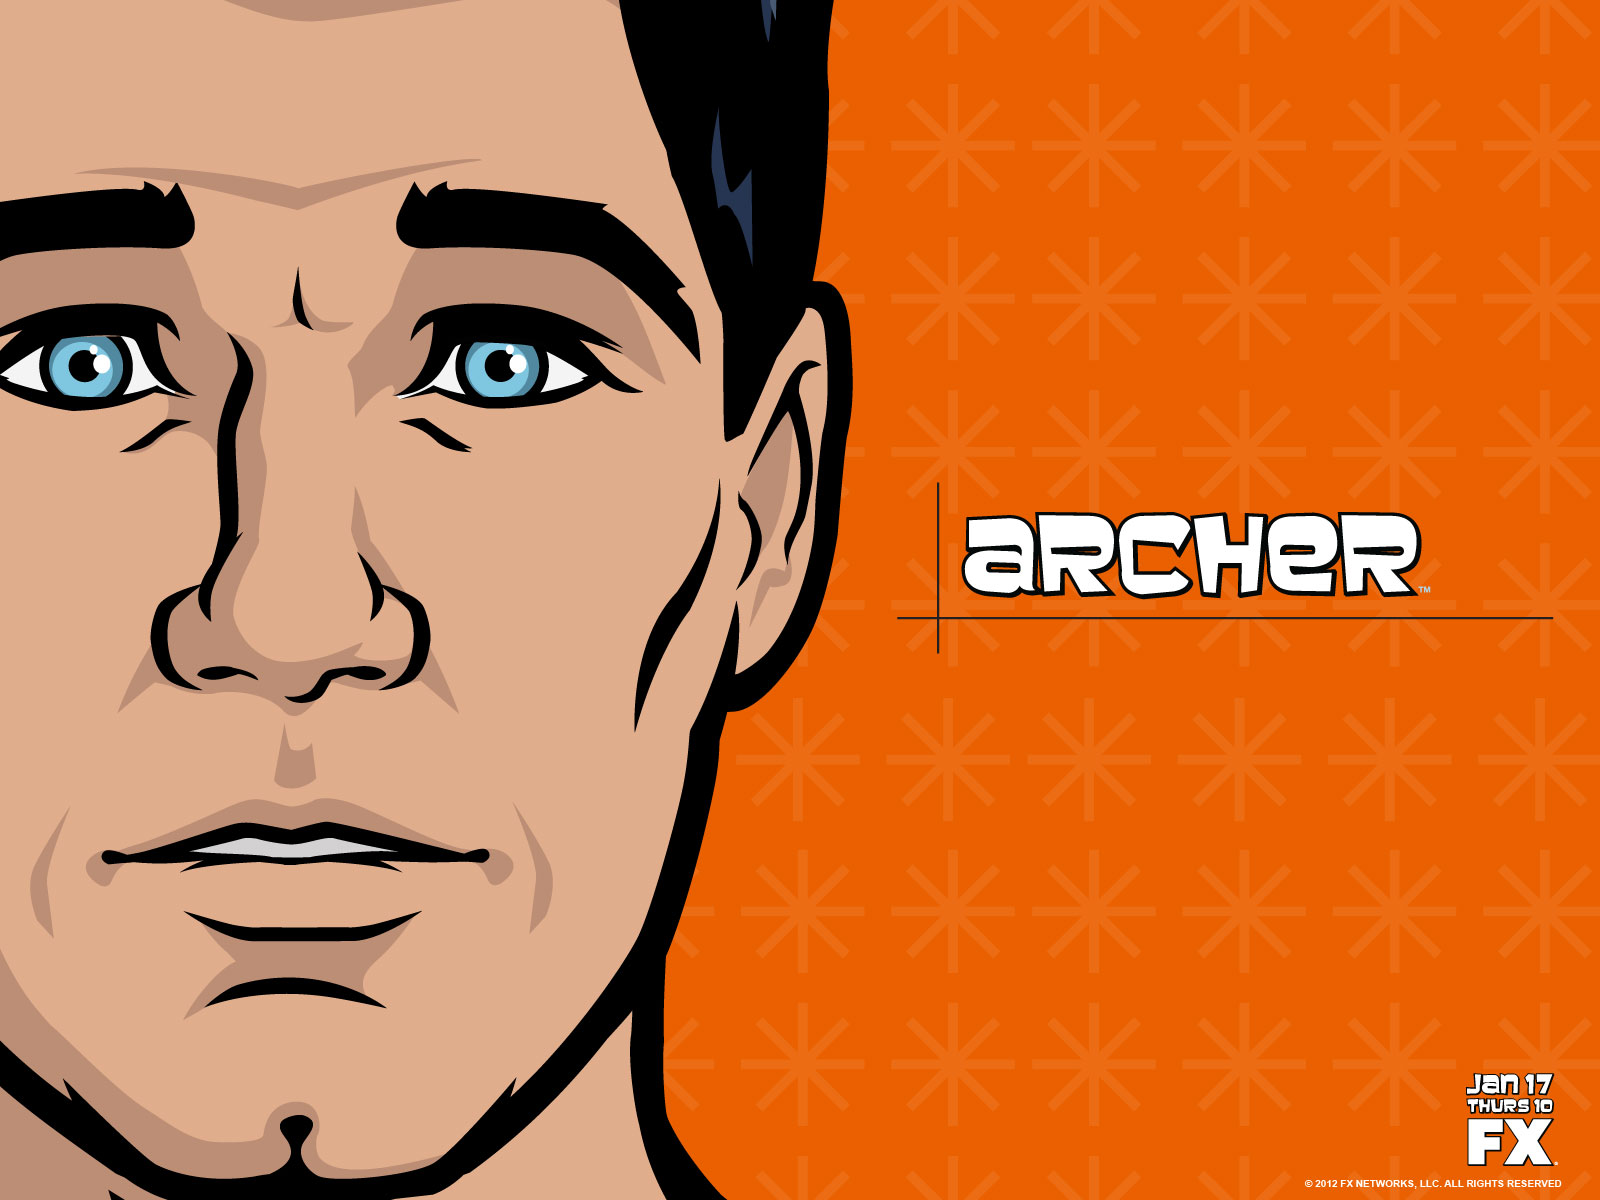 archer latin dating site Archery is the art, sport, practice or skill of using a bow to shoot arrows the word  comes from the latin arcus  archery was also co-opted as a distinctively british  tradition, dating back to the lore of robin  paralympic archery at ipc web site .